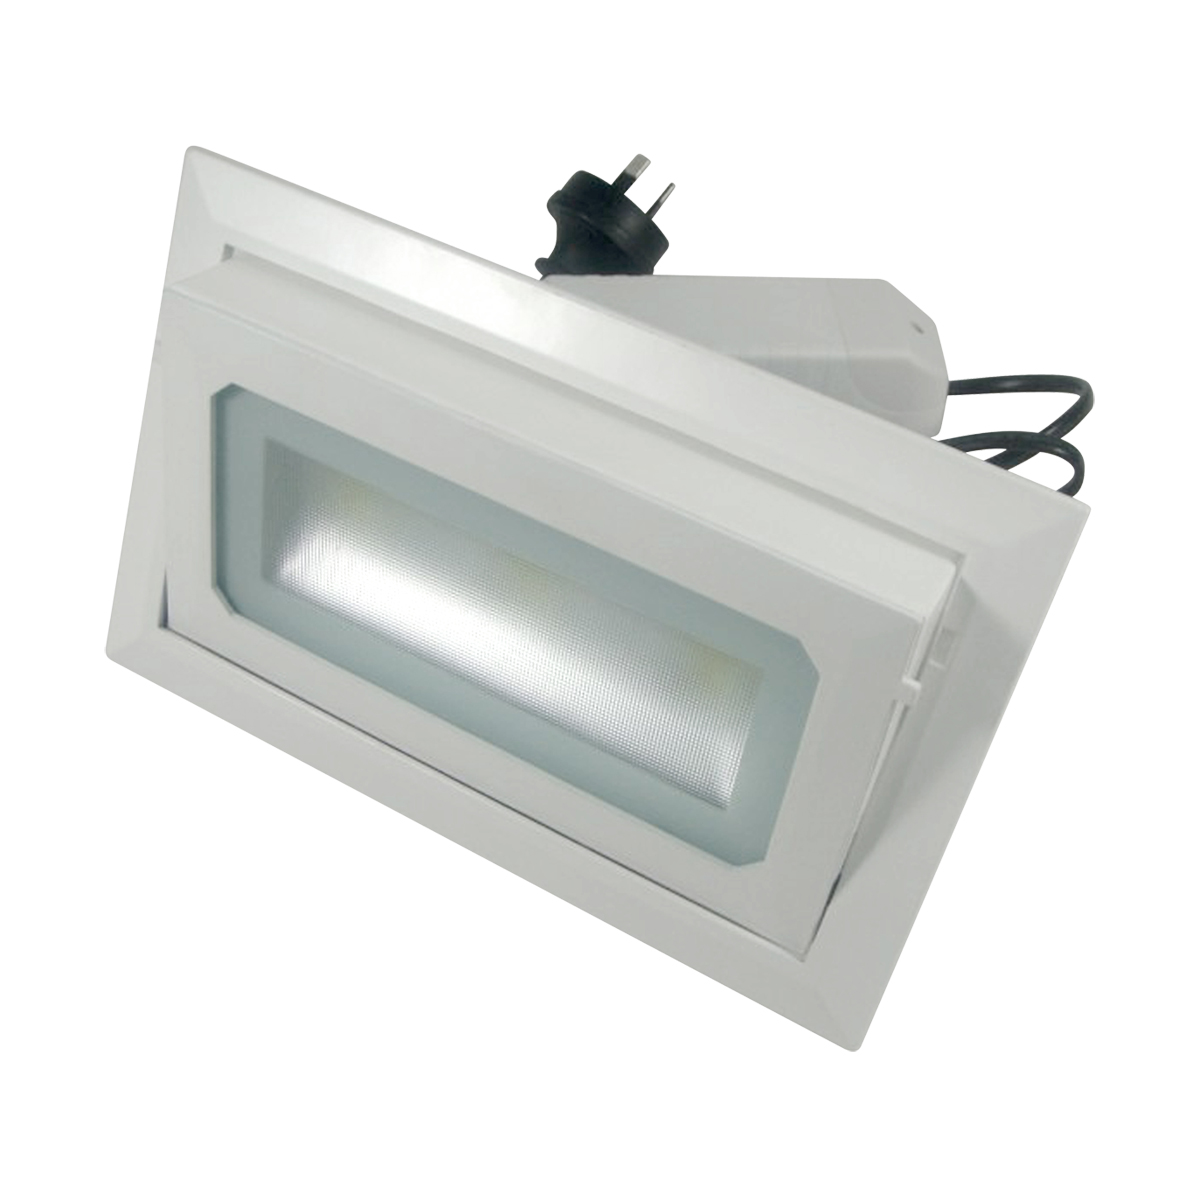 35 Watt LED Rectangle Shop Light Cool White